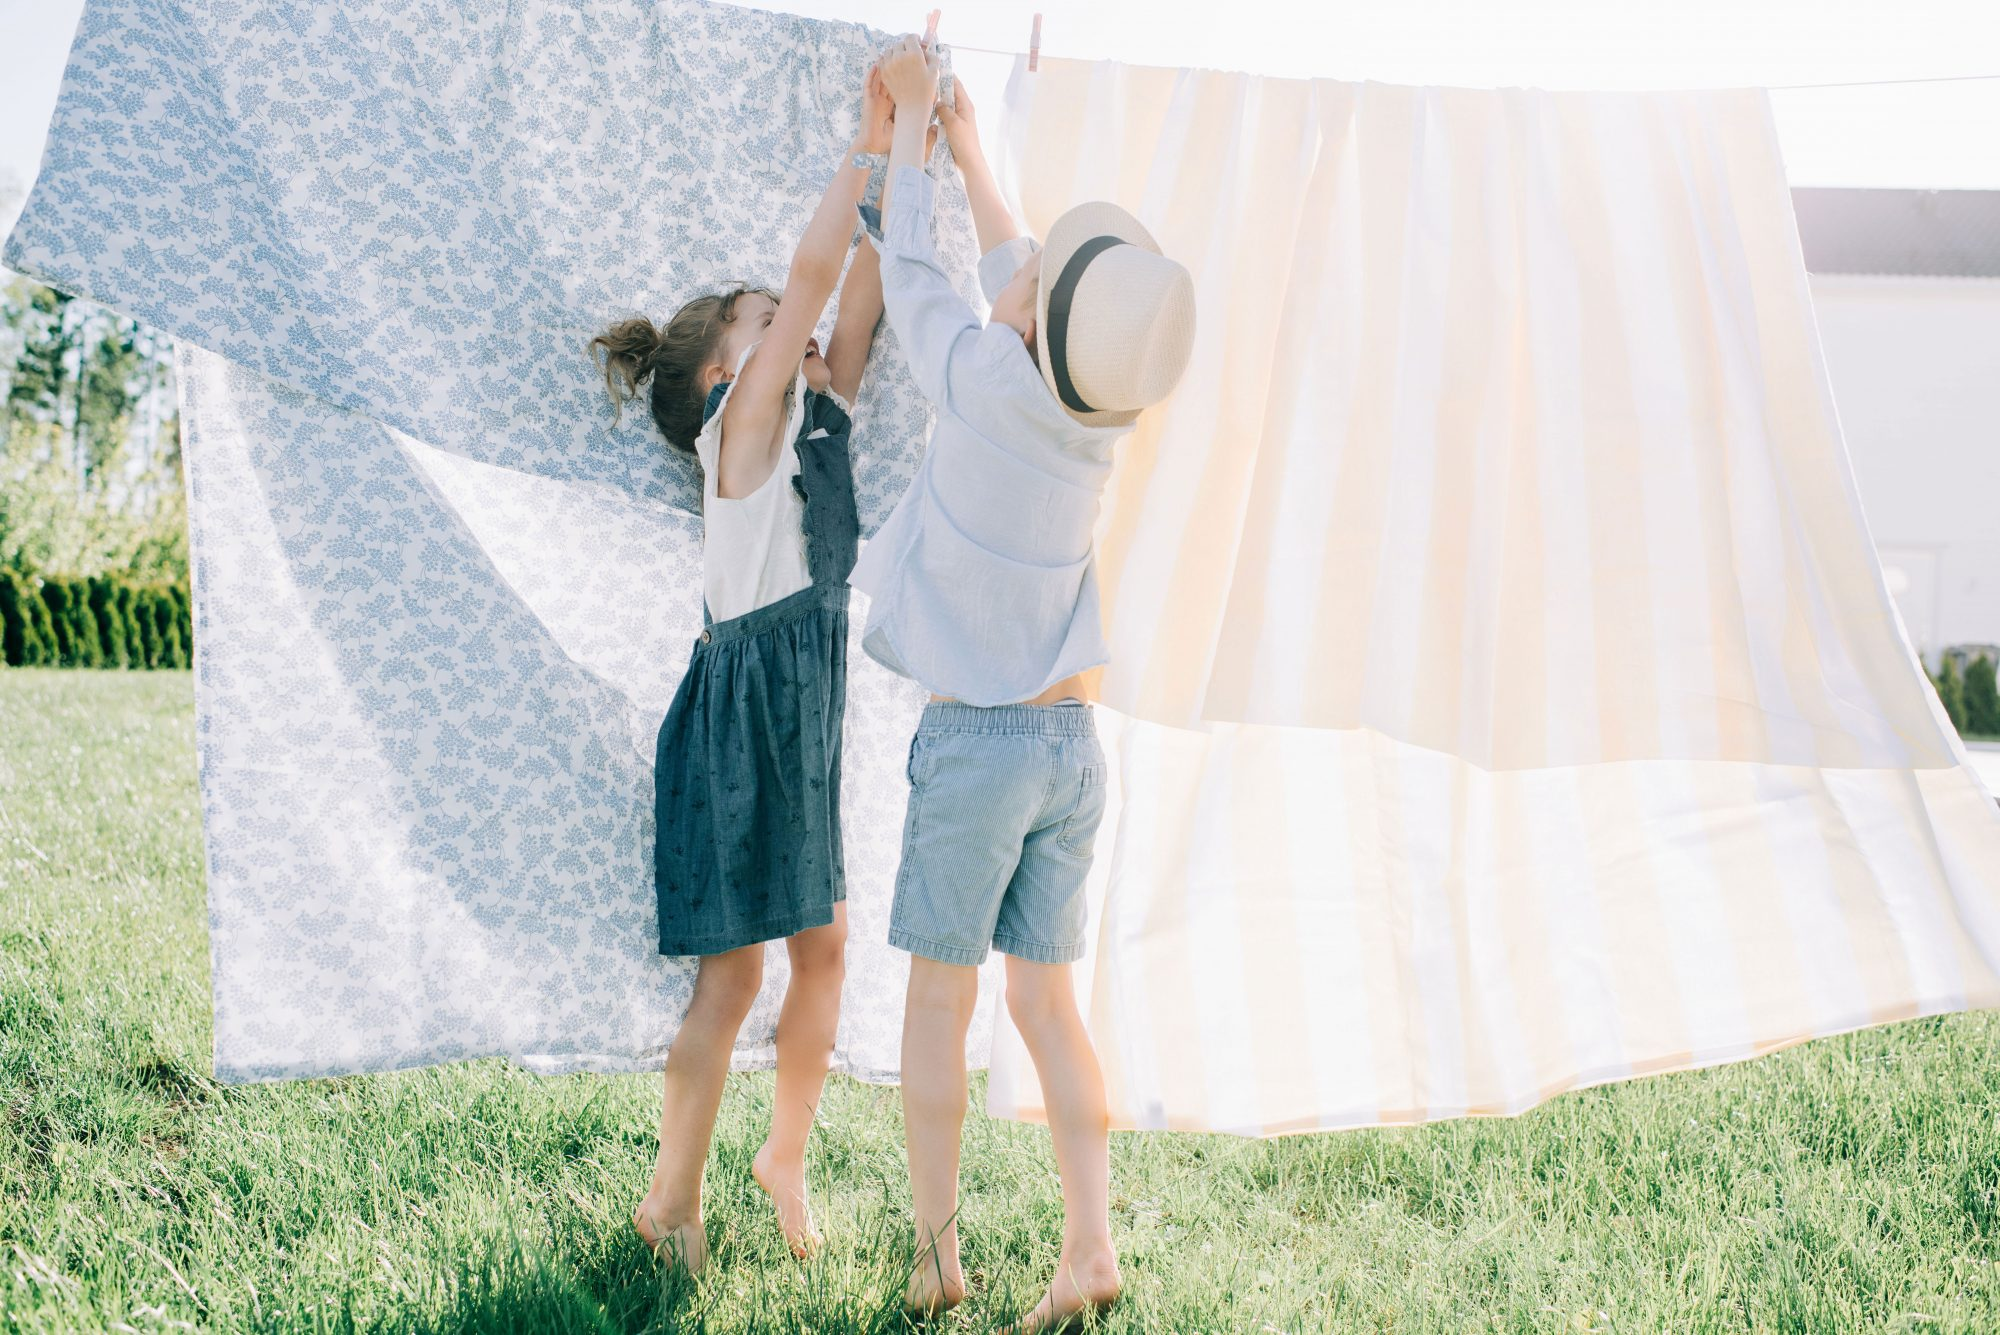 Two children hanging laundry on a clothesline